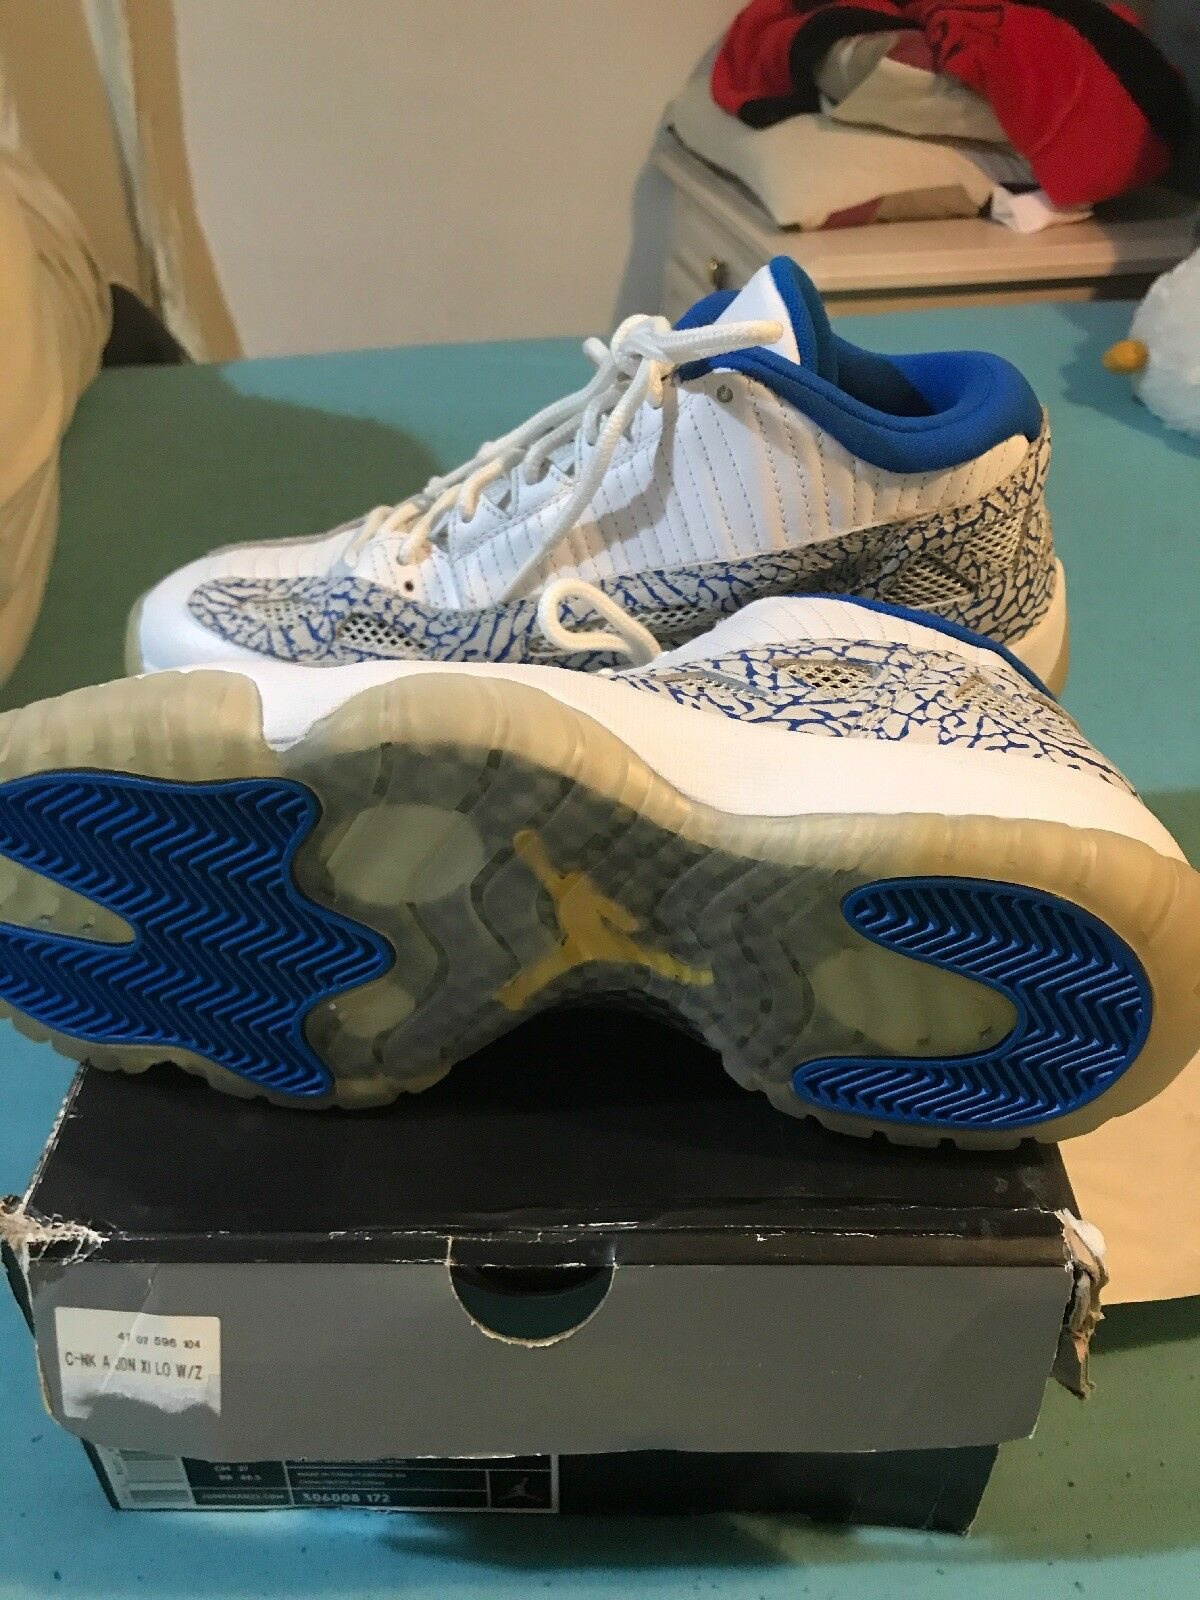 Air Jordan 11 Low Retro Jumpman In Weiß and and and Blau With Elephant Print Uk 8 1b48f2